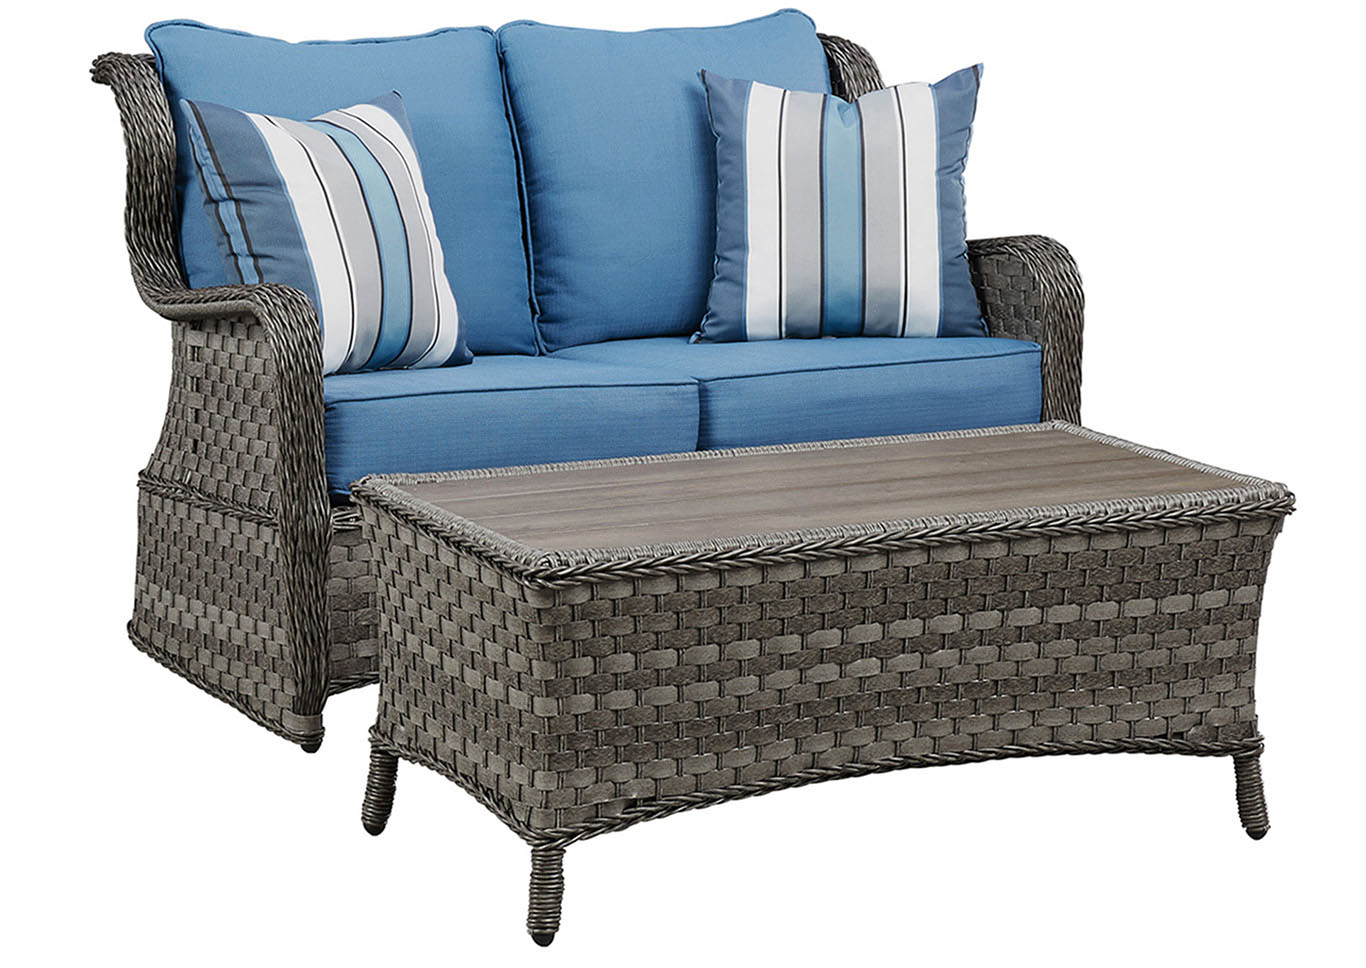 blue fl sofa mainstays sleeper with memory foam mattress grey tallahassee discount furniture abbots court gray loveseat glider w table outdoor by ashley